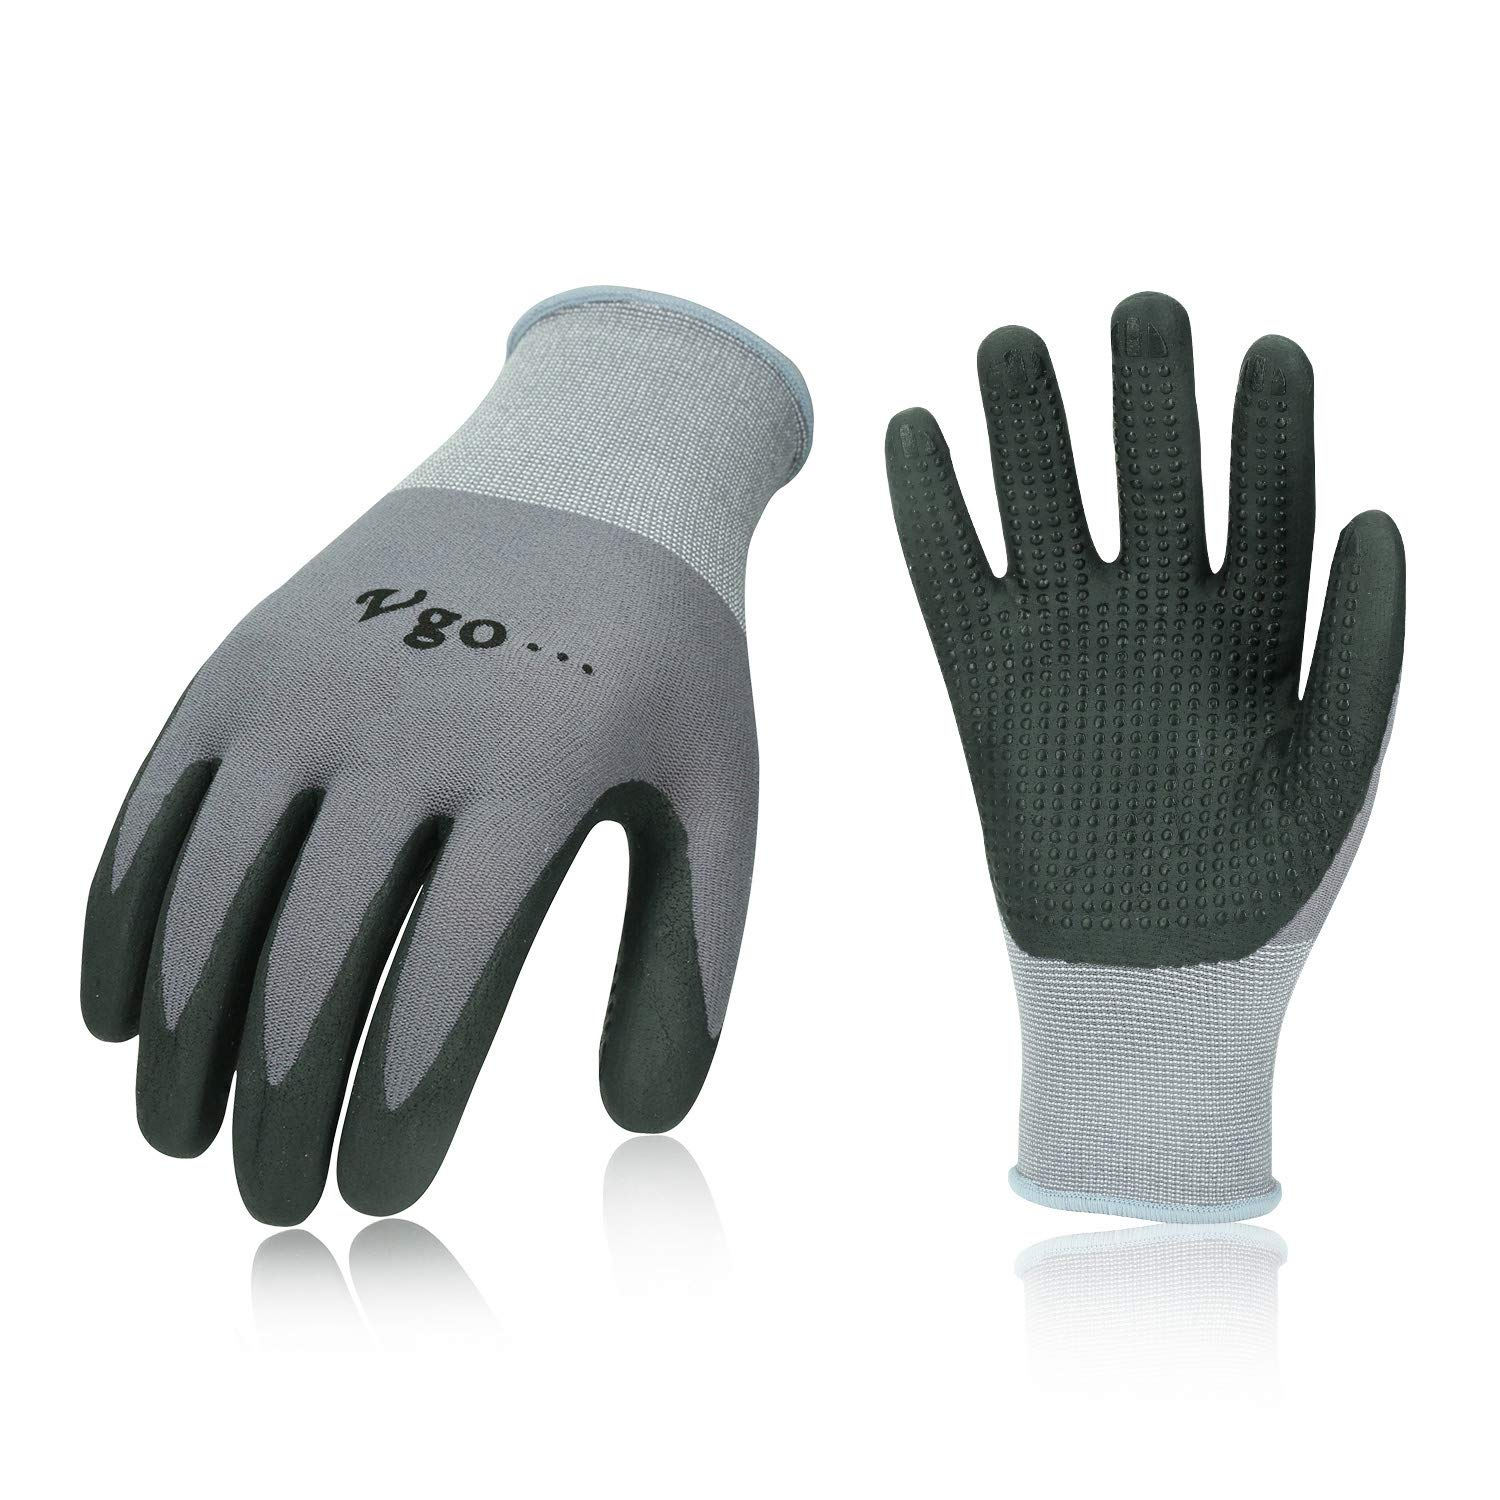 Vgo 3 Pairs Glove Garden Nitrile Coating Gardening and Work Gloves General Purpose (Size 9/L, Black, NT5148) Laborsing Safety Products Inc.